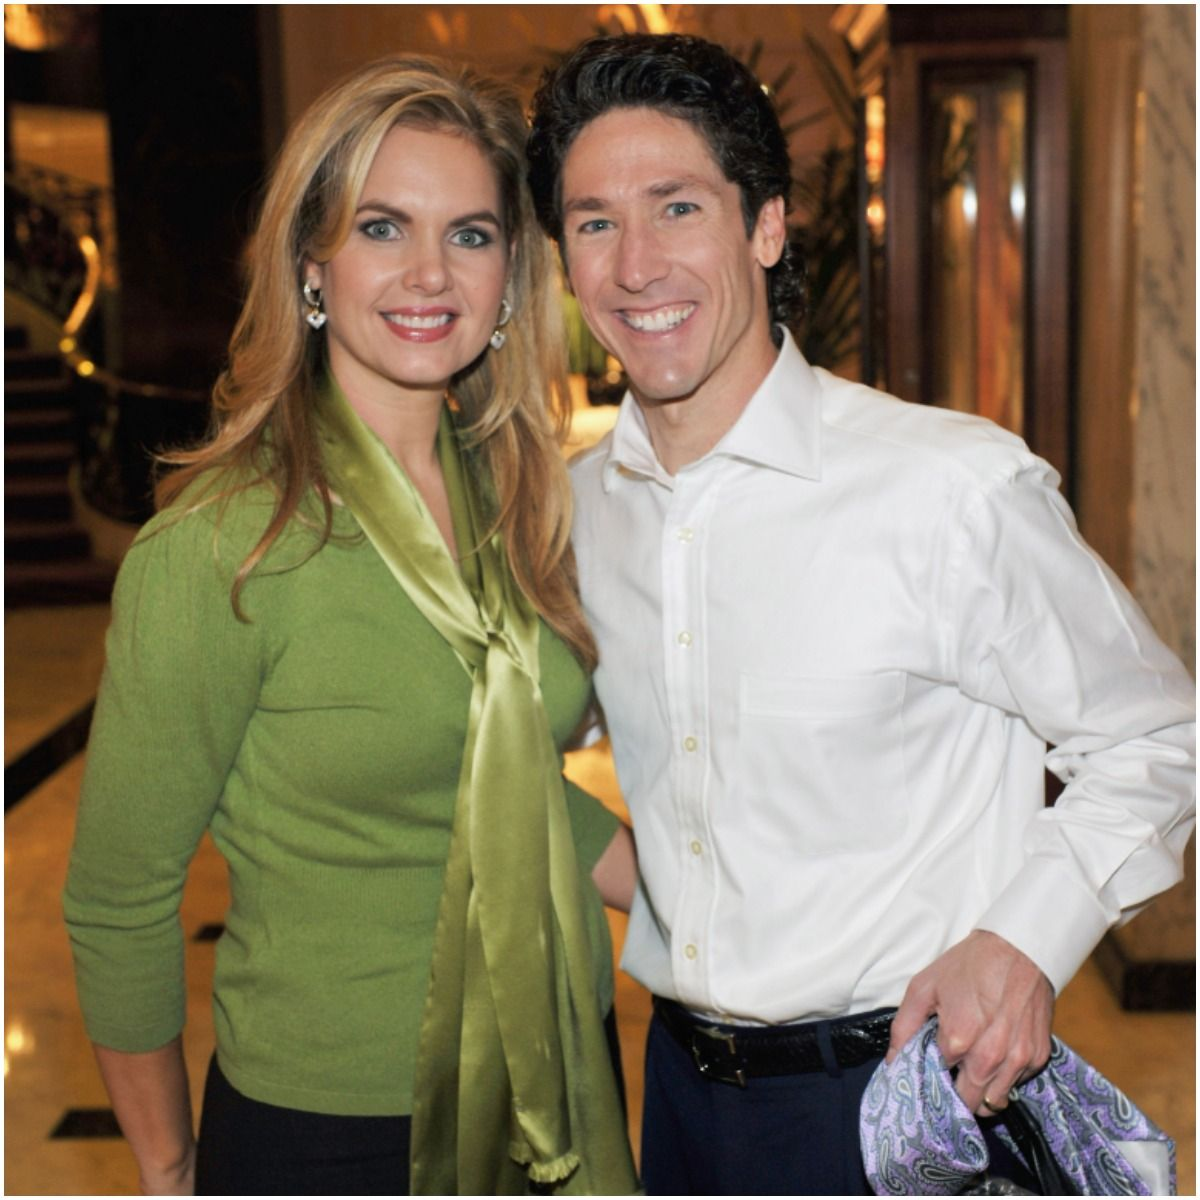 Victoria Osteen with her husband Joel Osteen